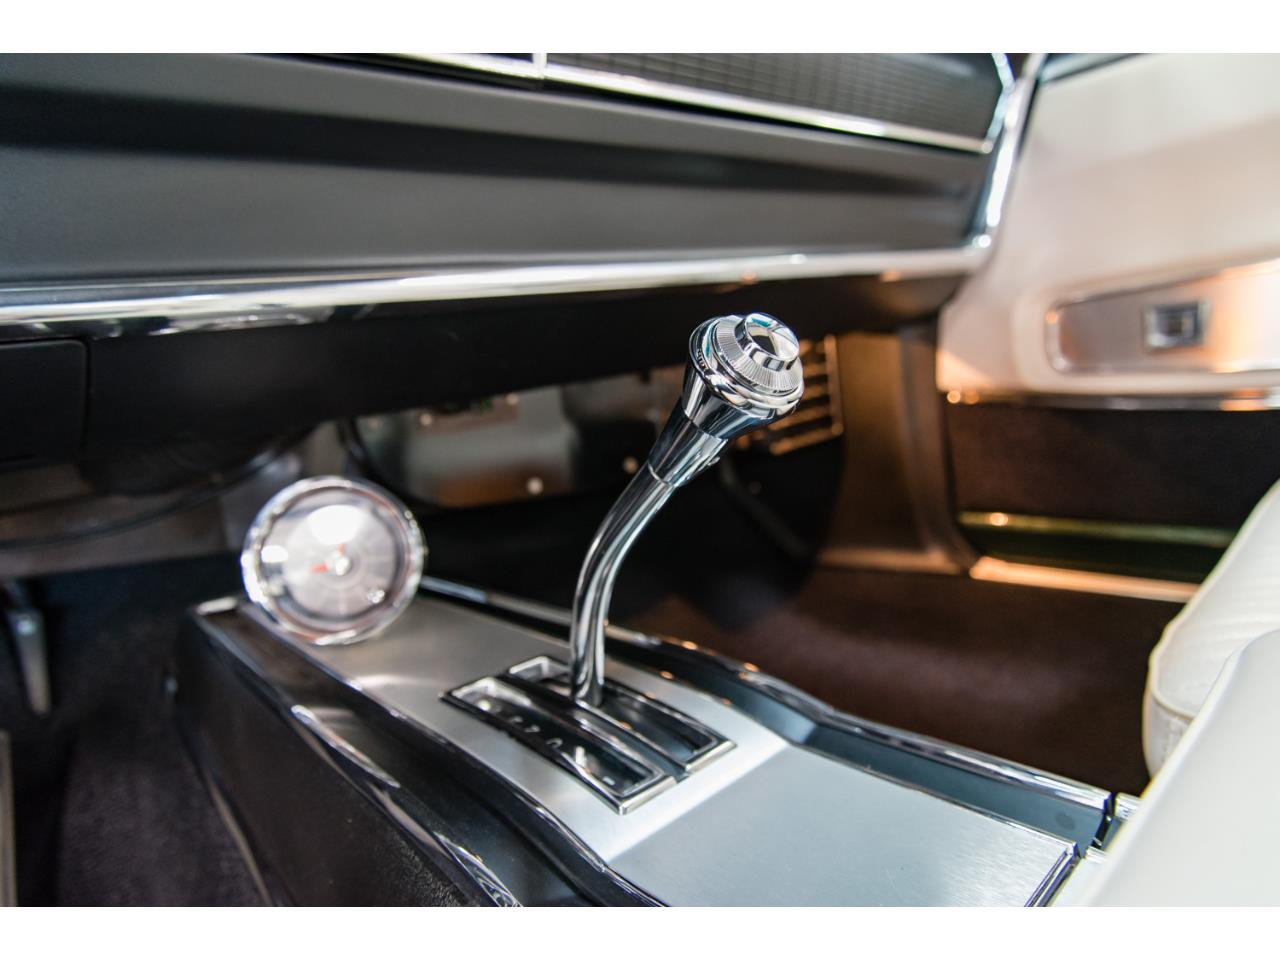 Large Picture of Classic '67 Dodge Charger located in Ohio - $175,000.00 - LKM1